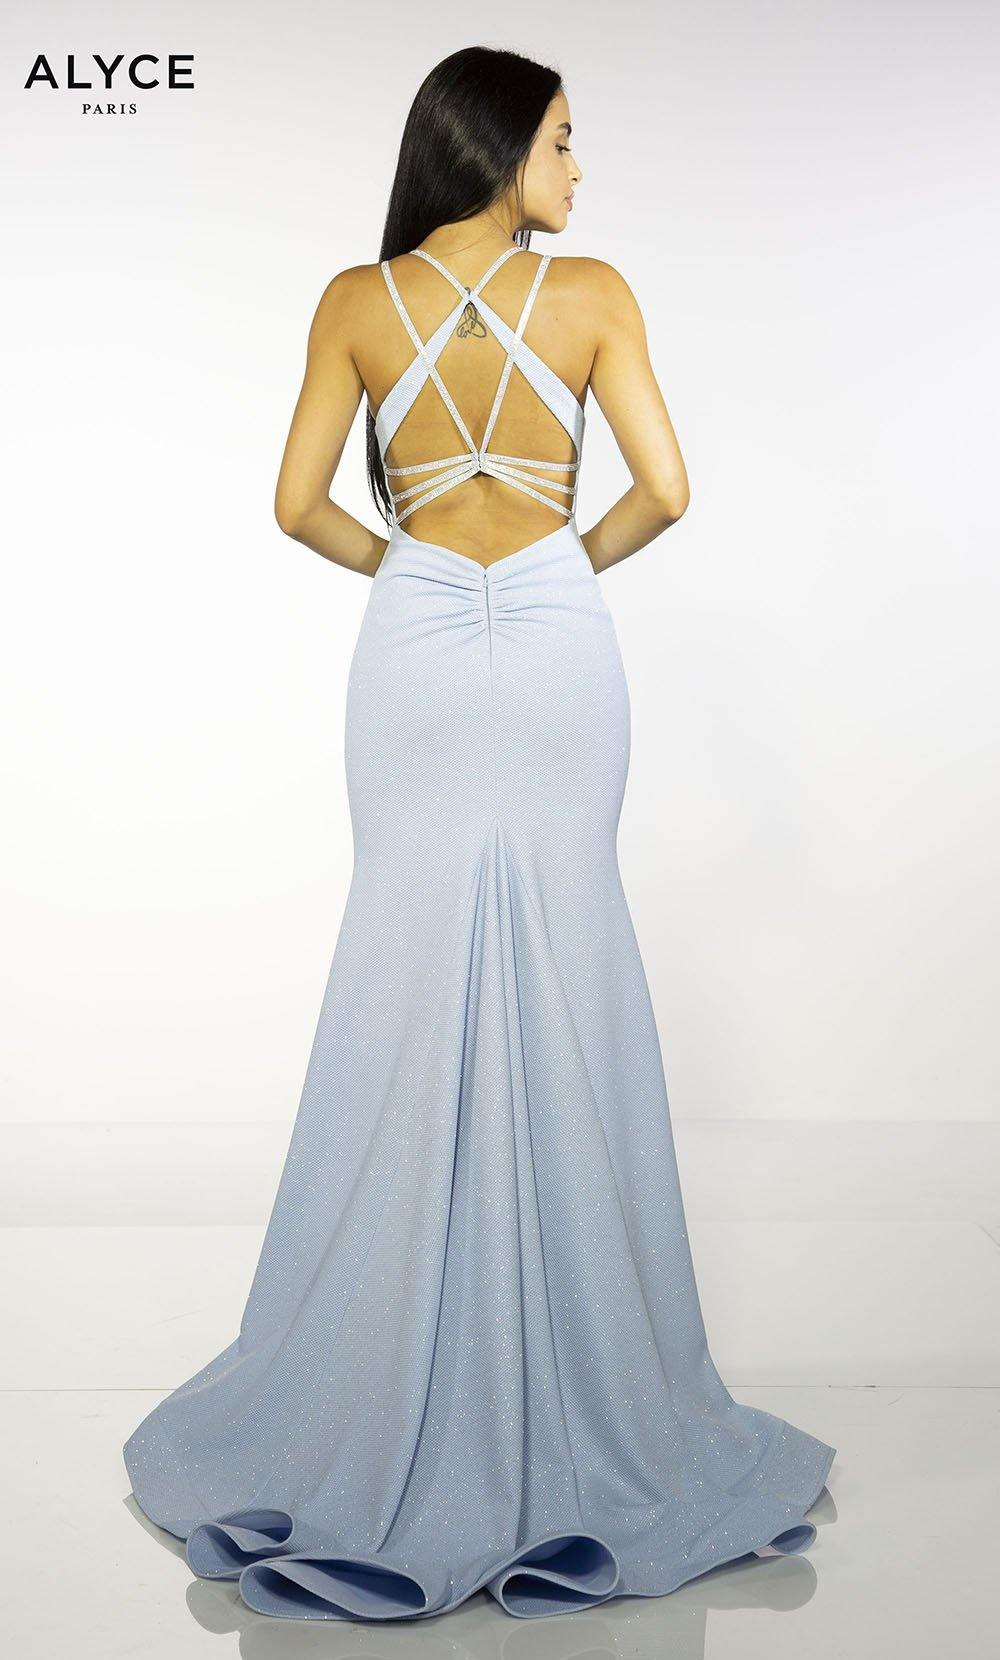 Glacier Blue mermaid style prom dress with a strappy back and sweep train